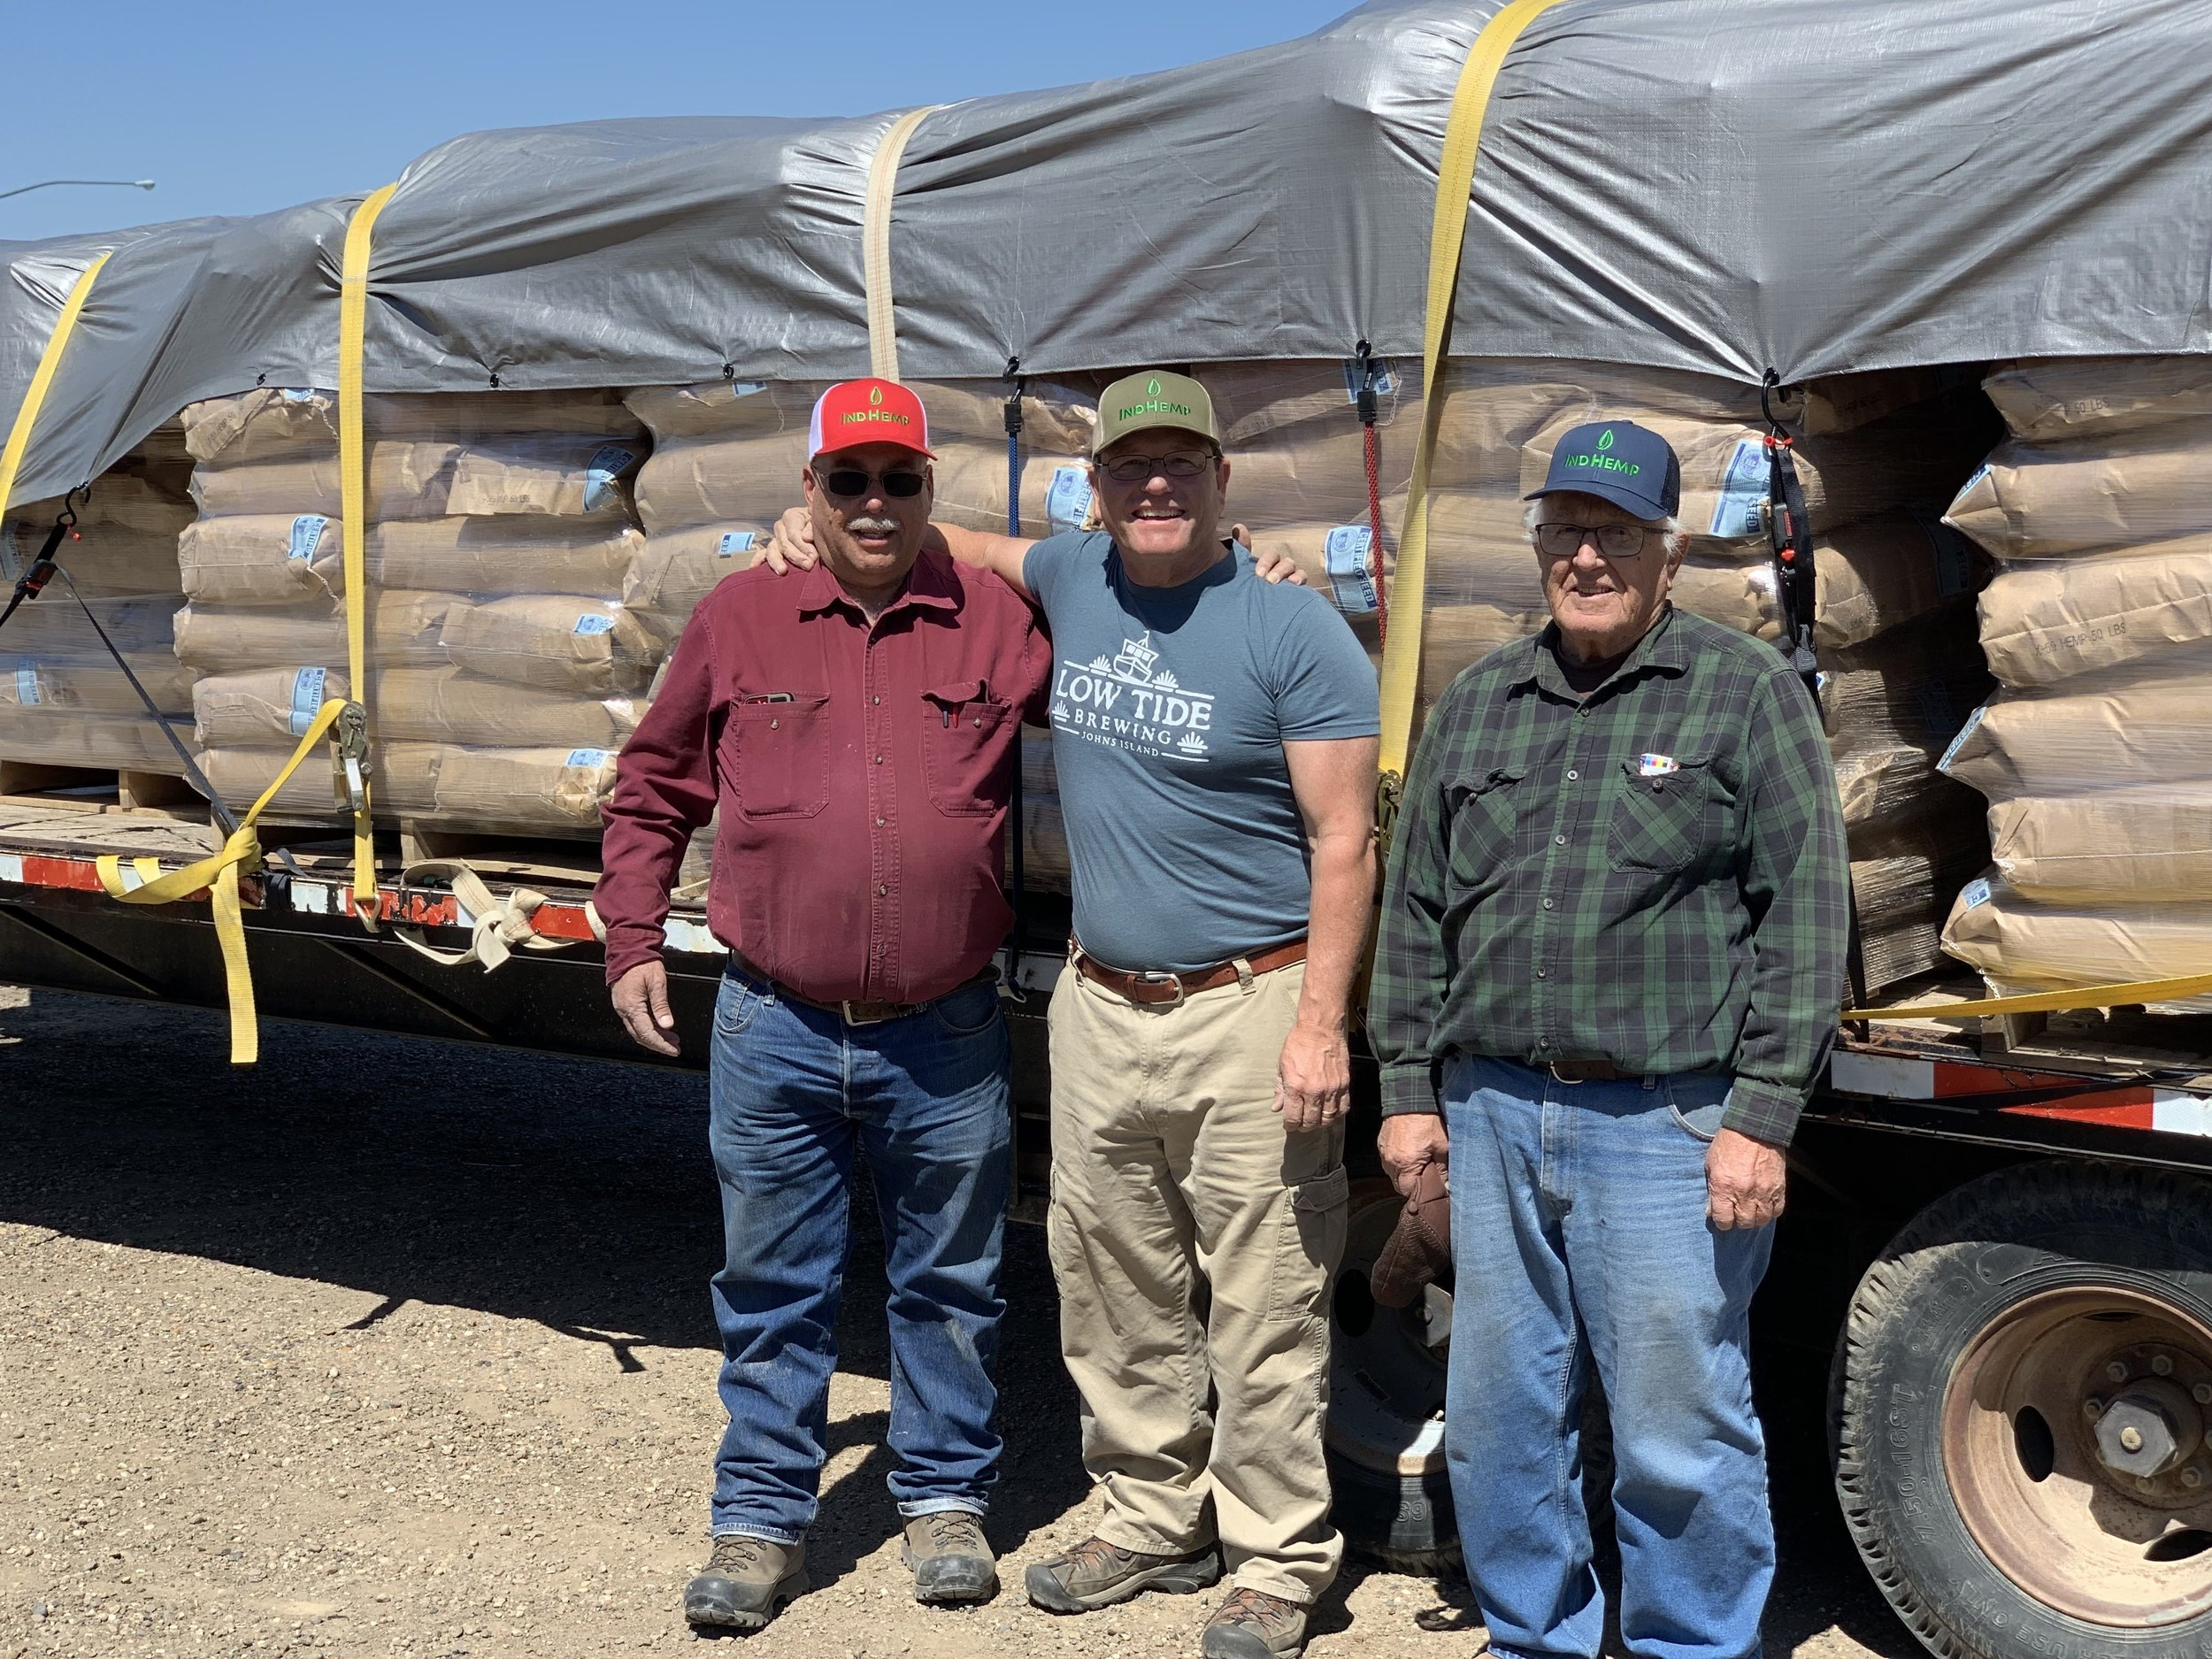 Ken loading up local organic farmer Dan French with friend Norm